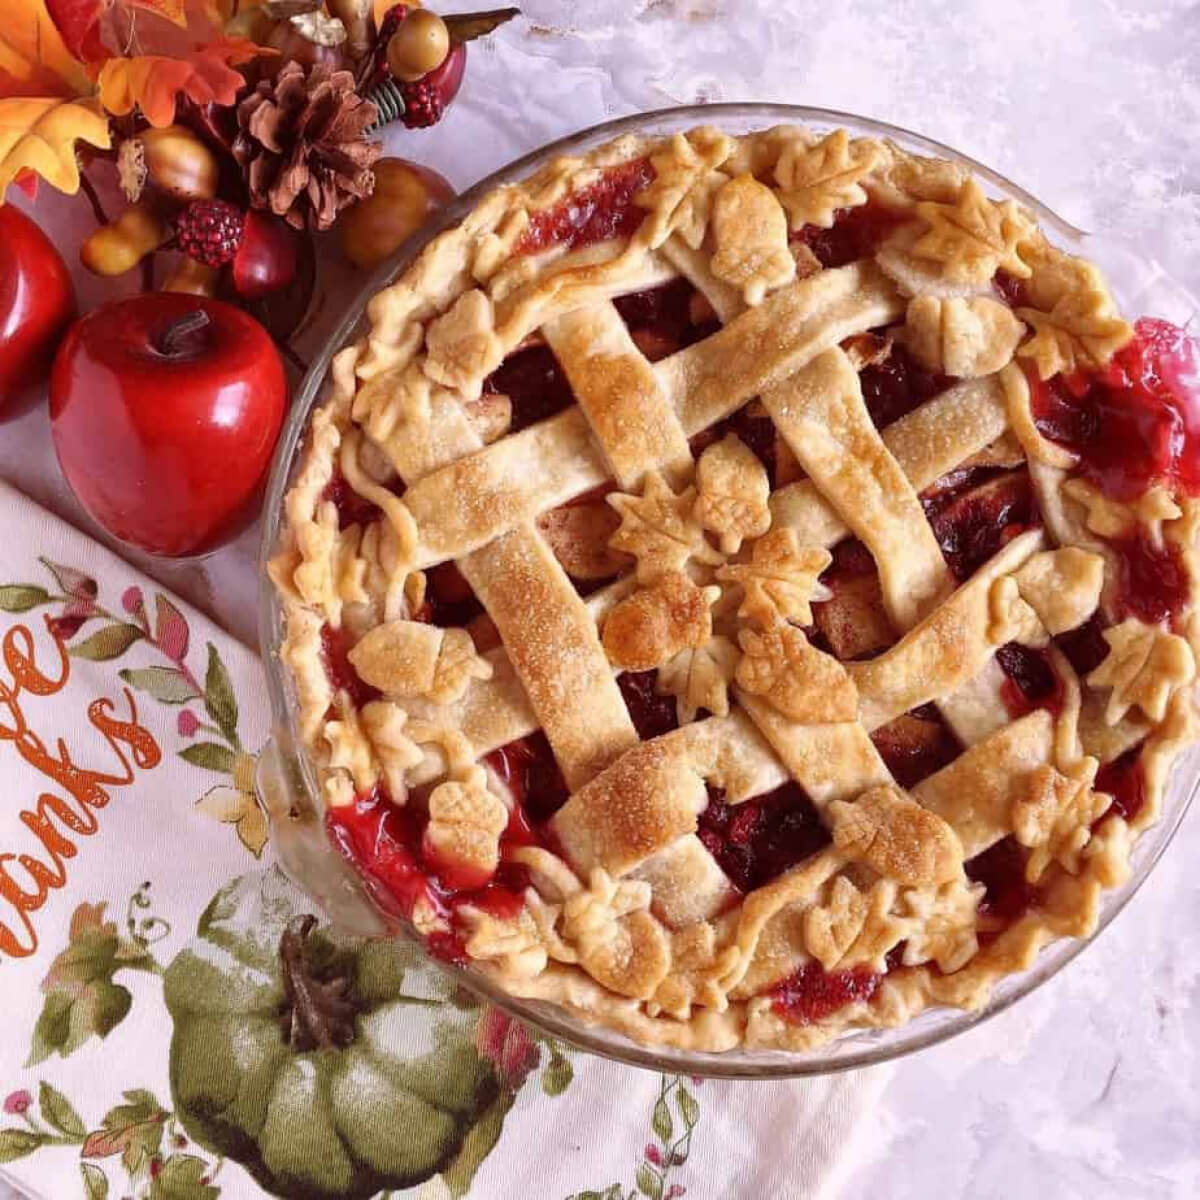 Cranberry Apple Pie with a beautiful decorative crust